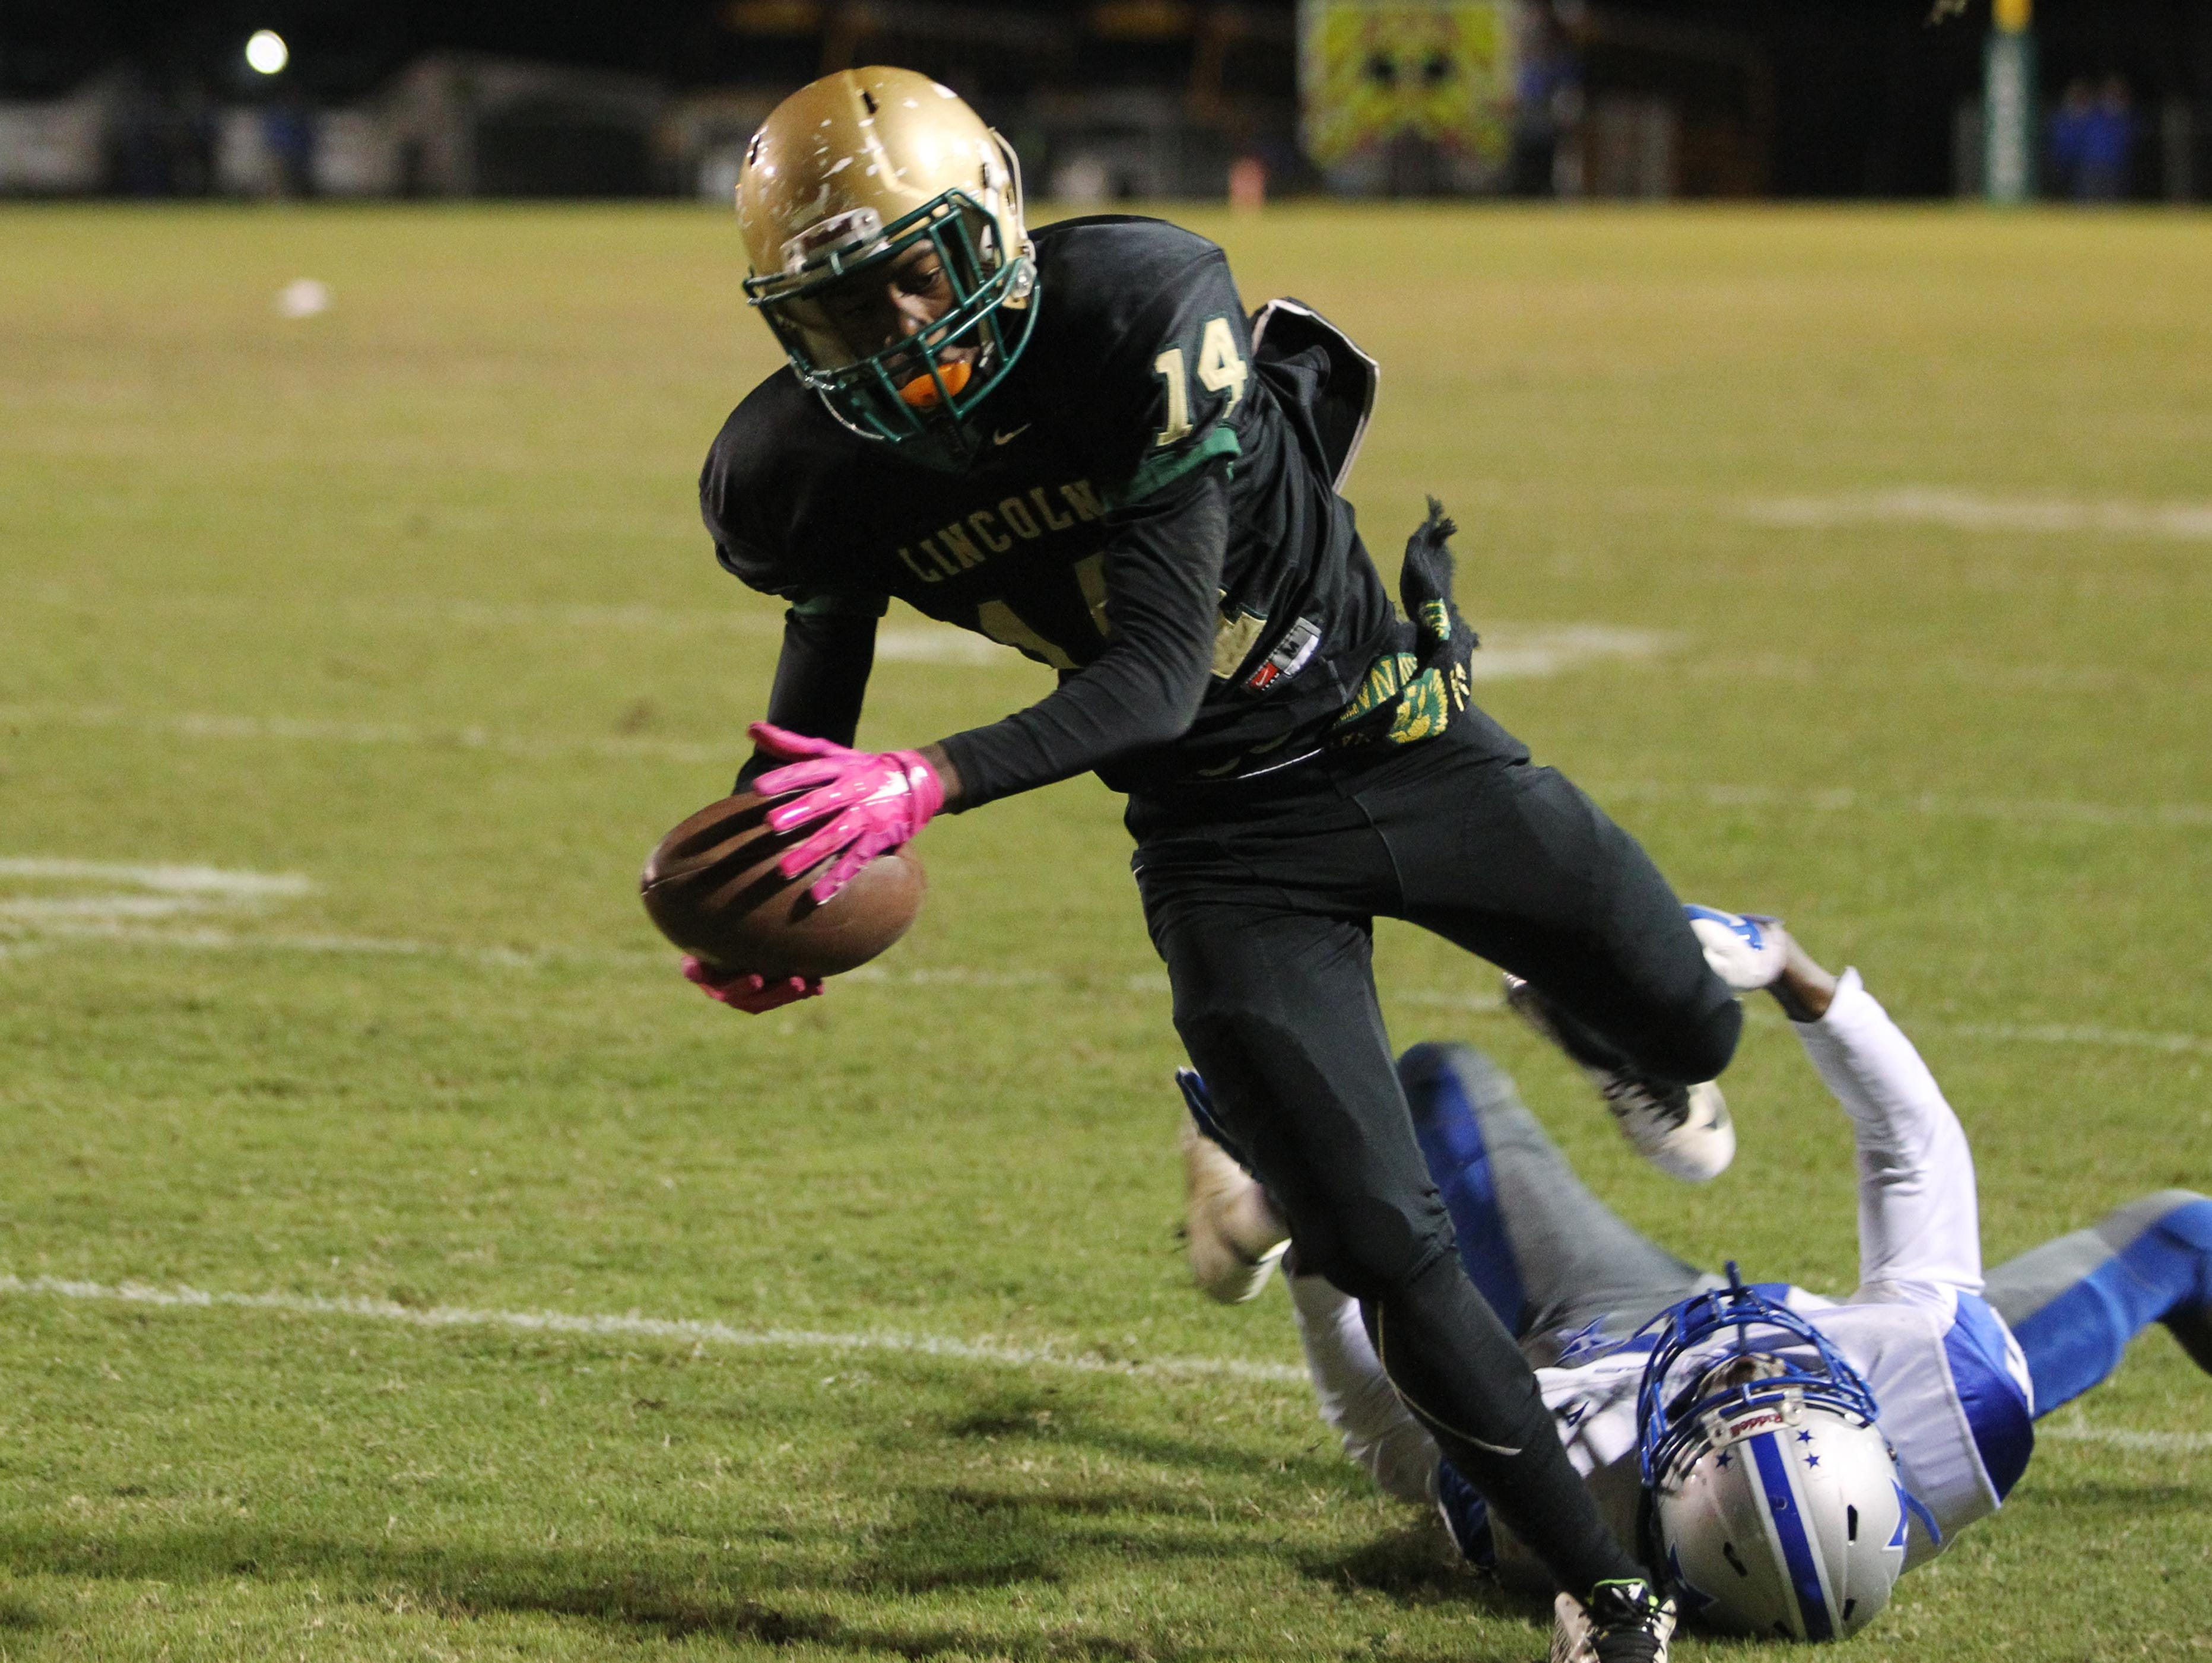 Lincoln junior Marquel Pittman caught three passes for 94 yards and a 19-yard touchdown, while also returning a kickoff 75 yards for a touchdown to help the Trojans get past Lee, 44-41 in overtime on Friday night in a Region 1-7A quarterfinal playoff game.